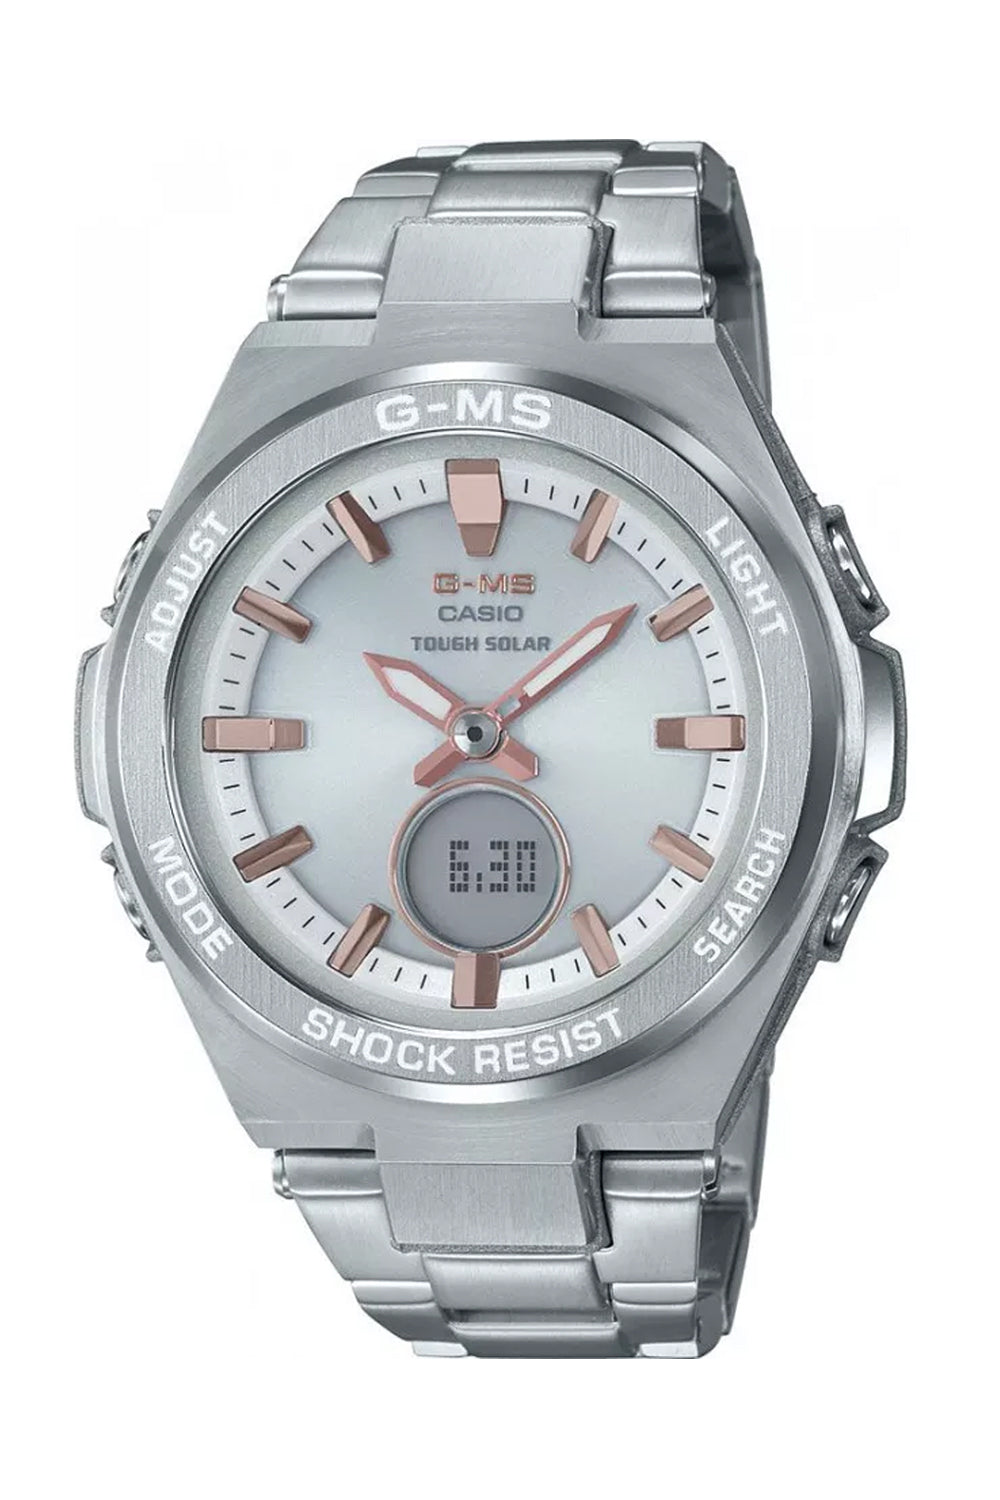 CASIO MSG-S200D-7AER Baby-G G-MS